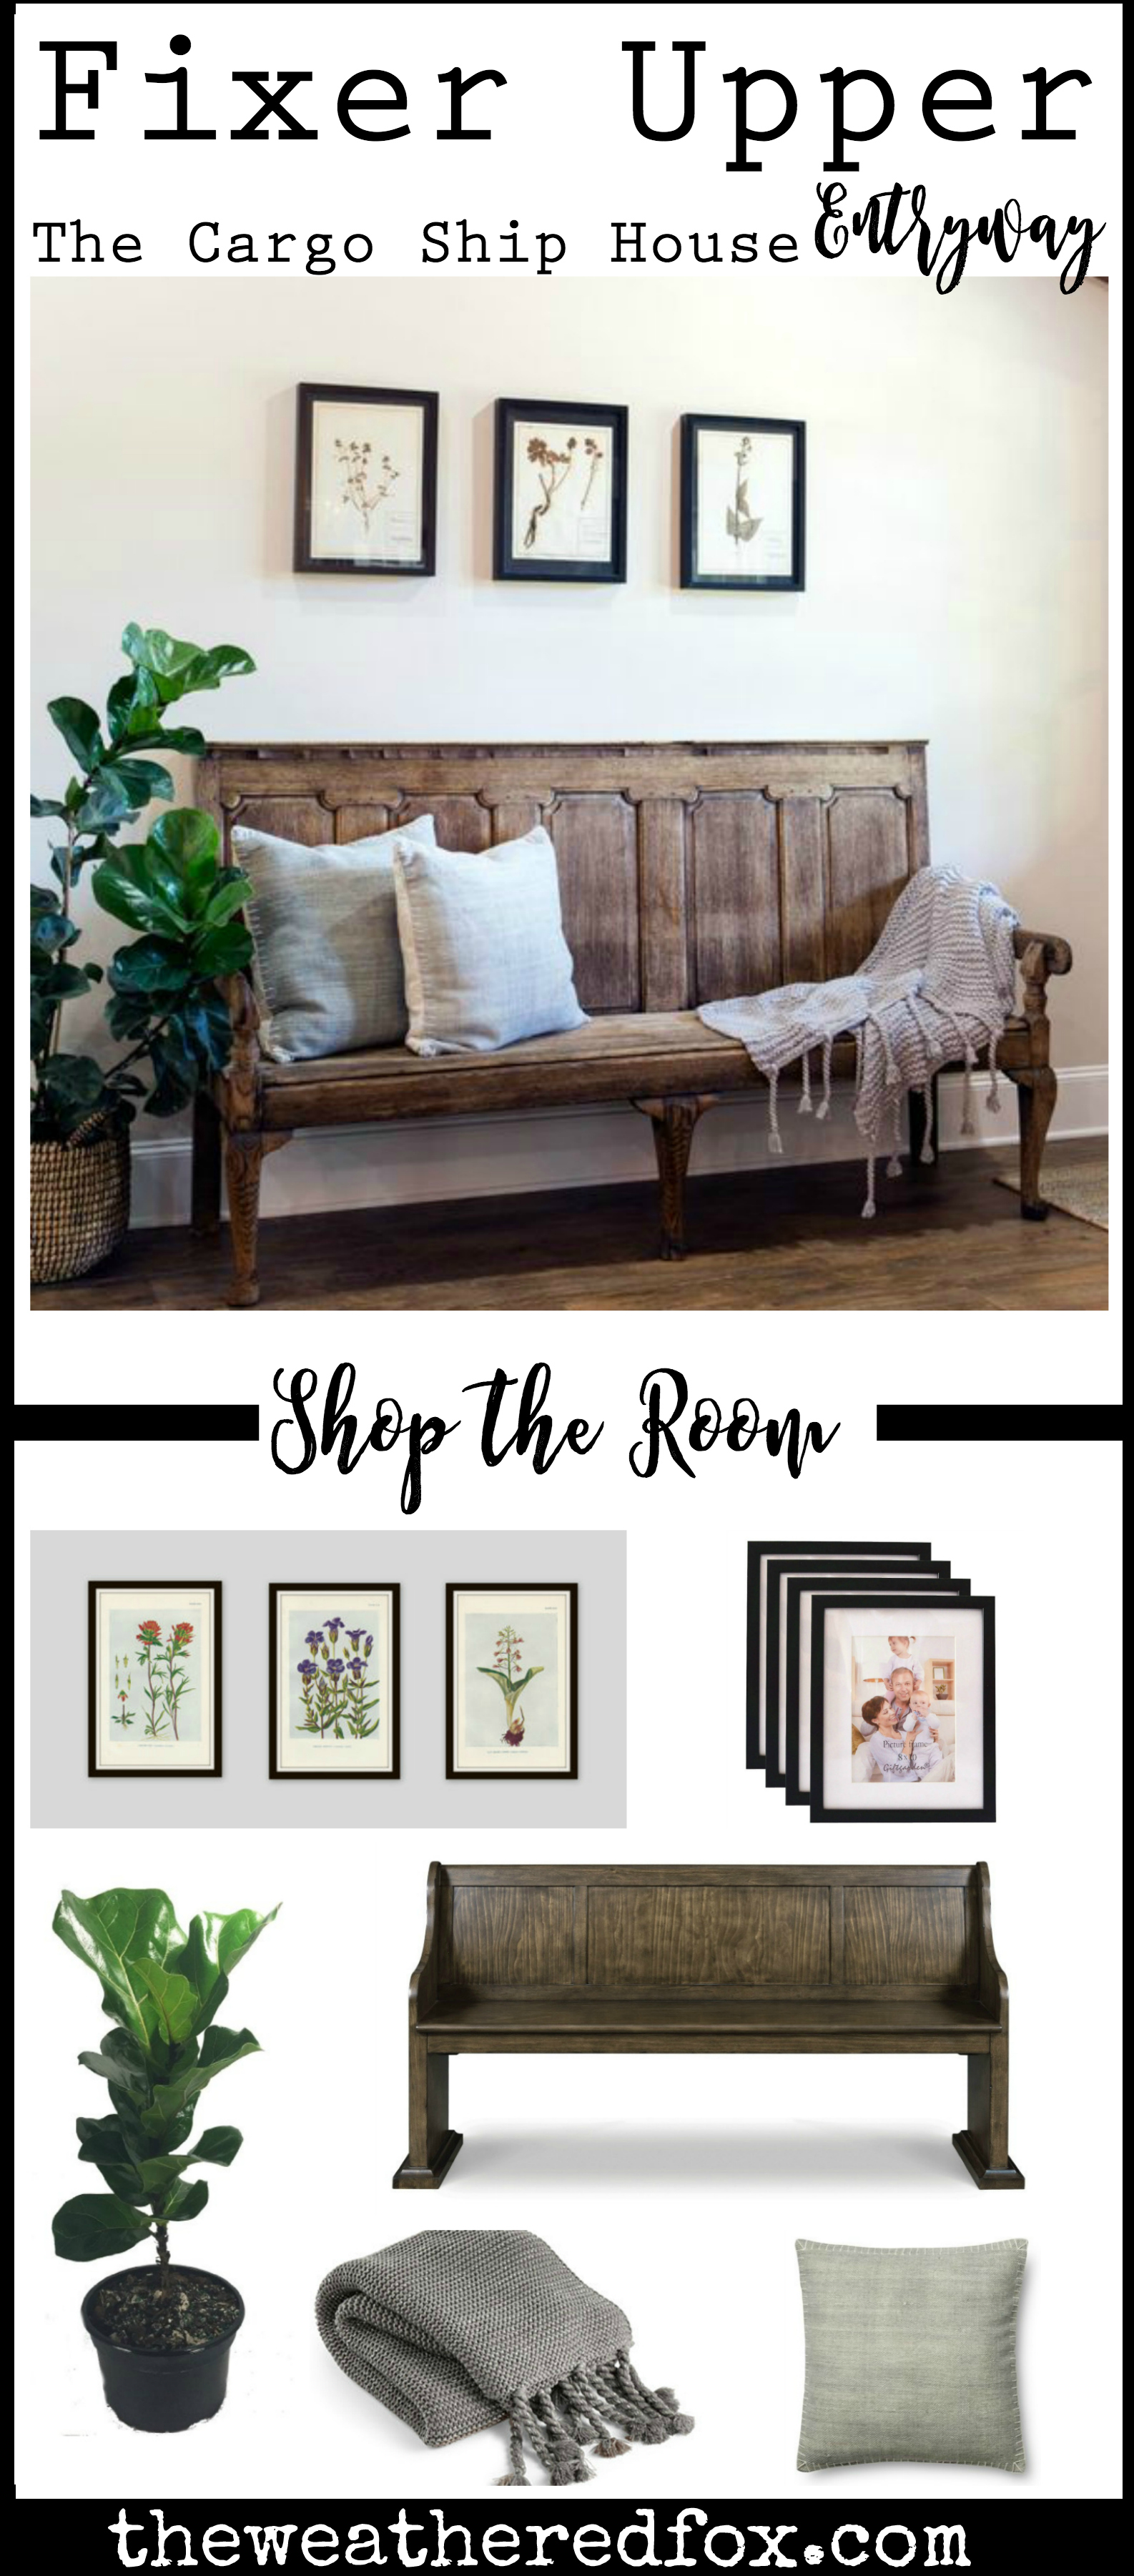 Get the look of the Fixer Upper Cargo ship House entryway!